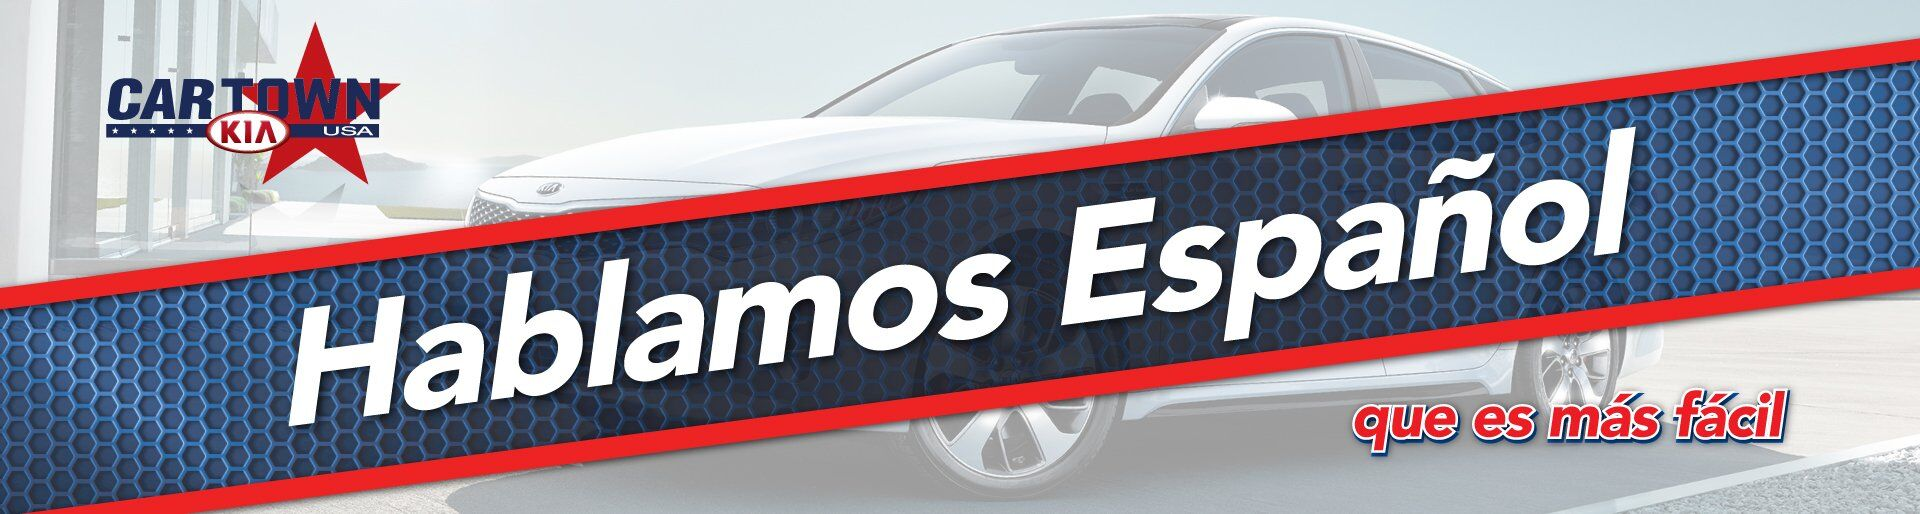 We Speak Spanish at CarTown Kia USA